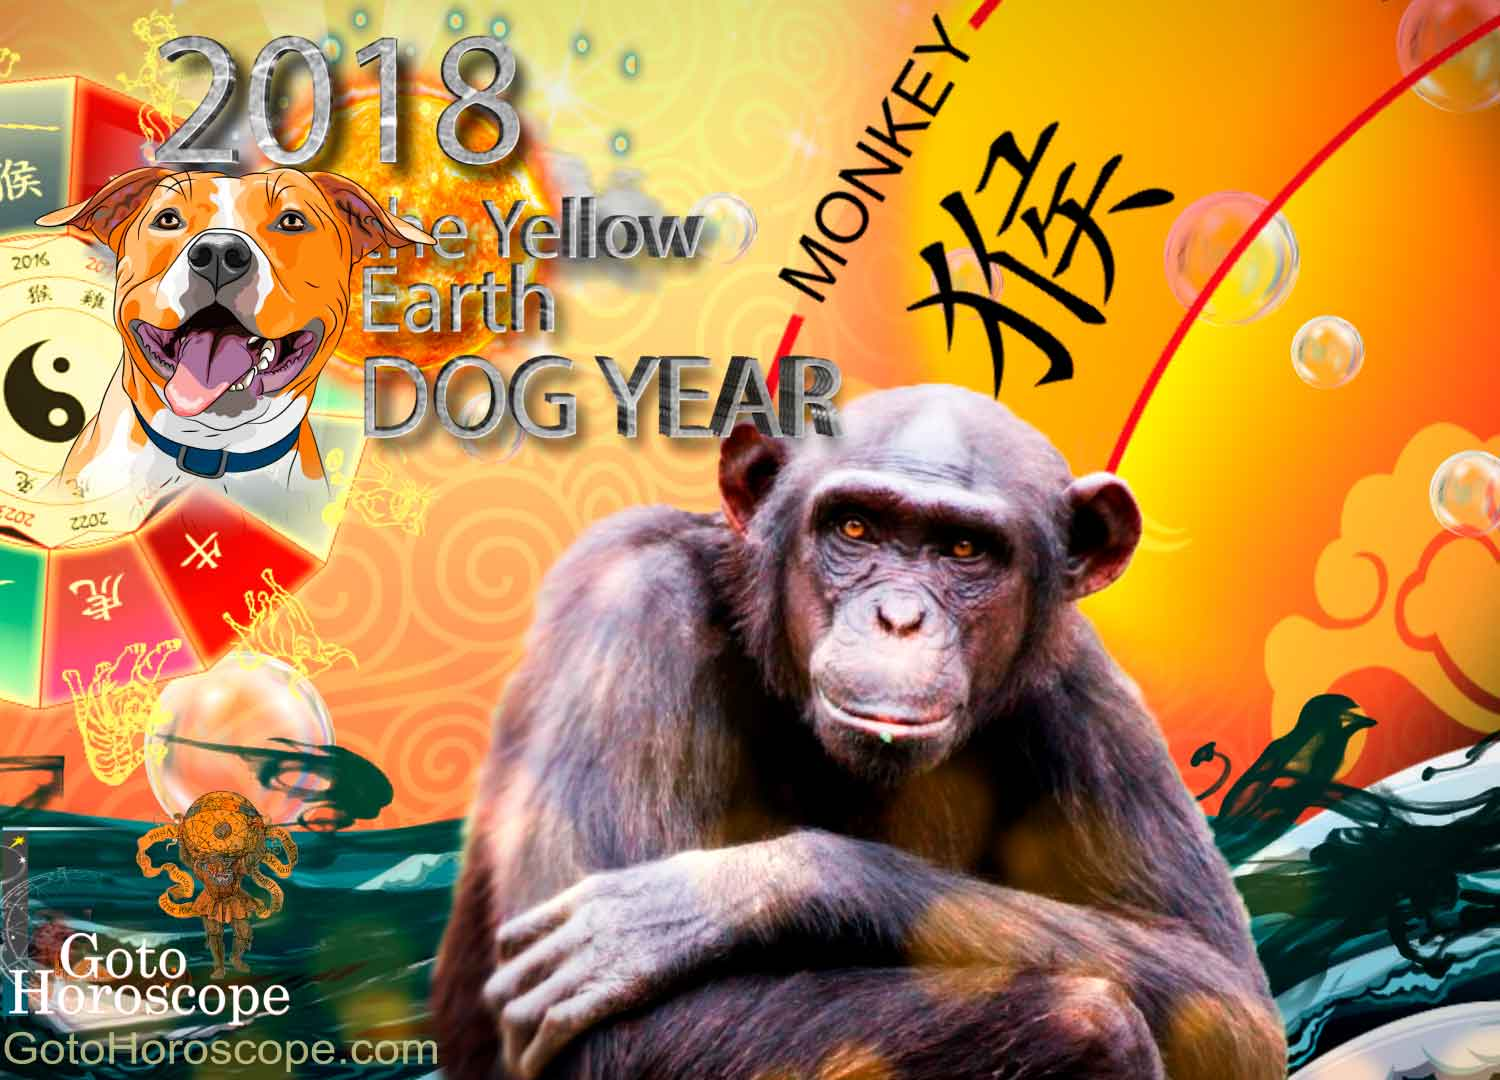 Monkey 2018 Horoscope for the Yellow Earth Dog Year